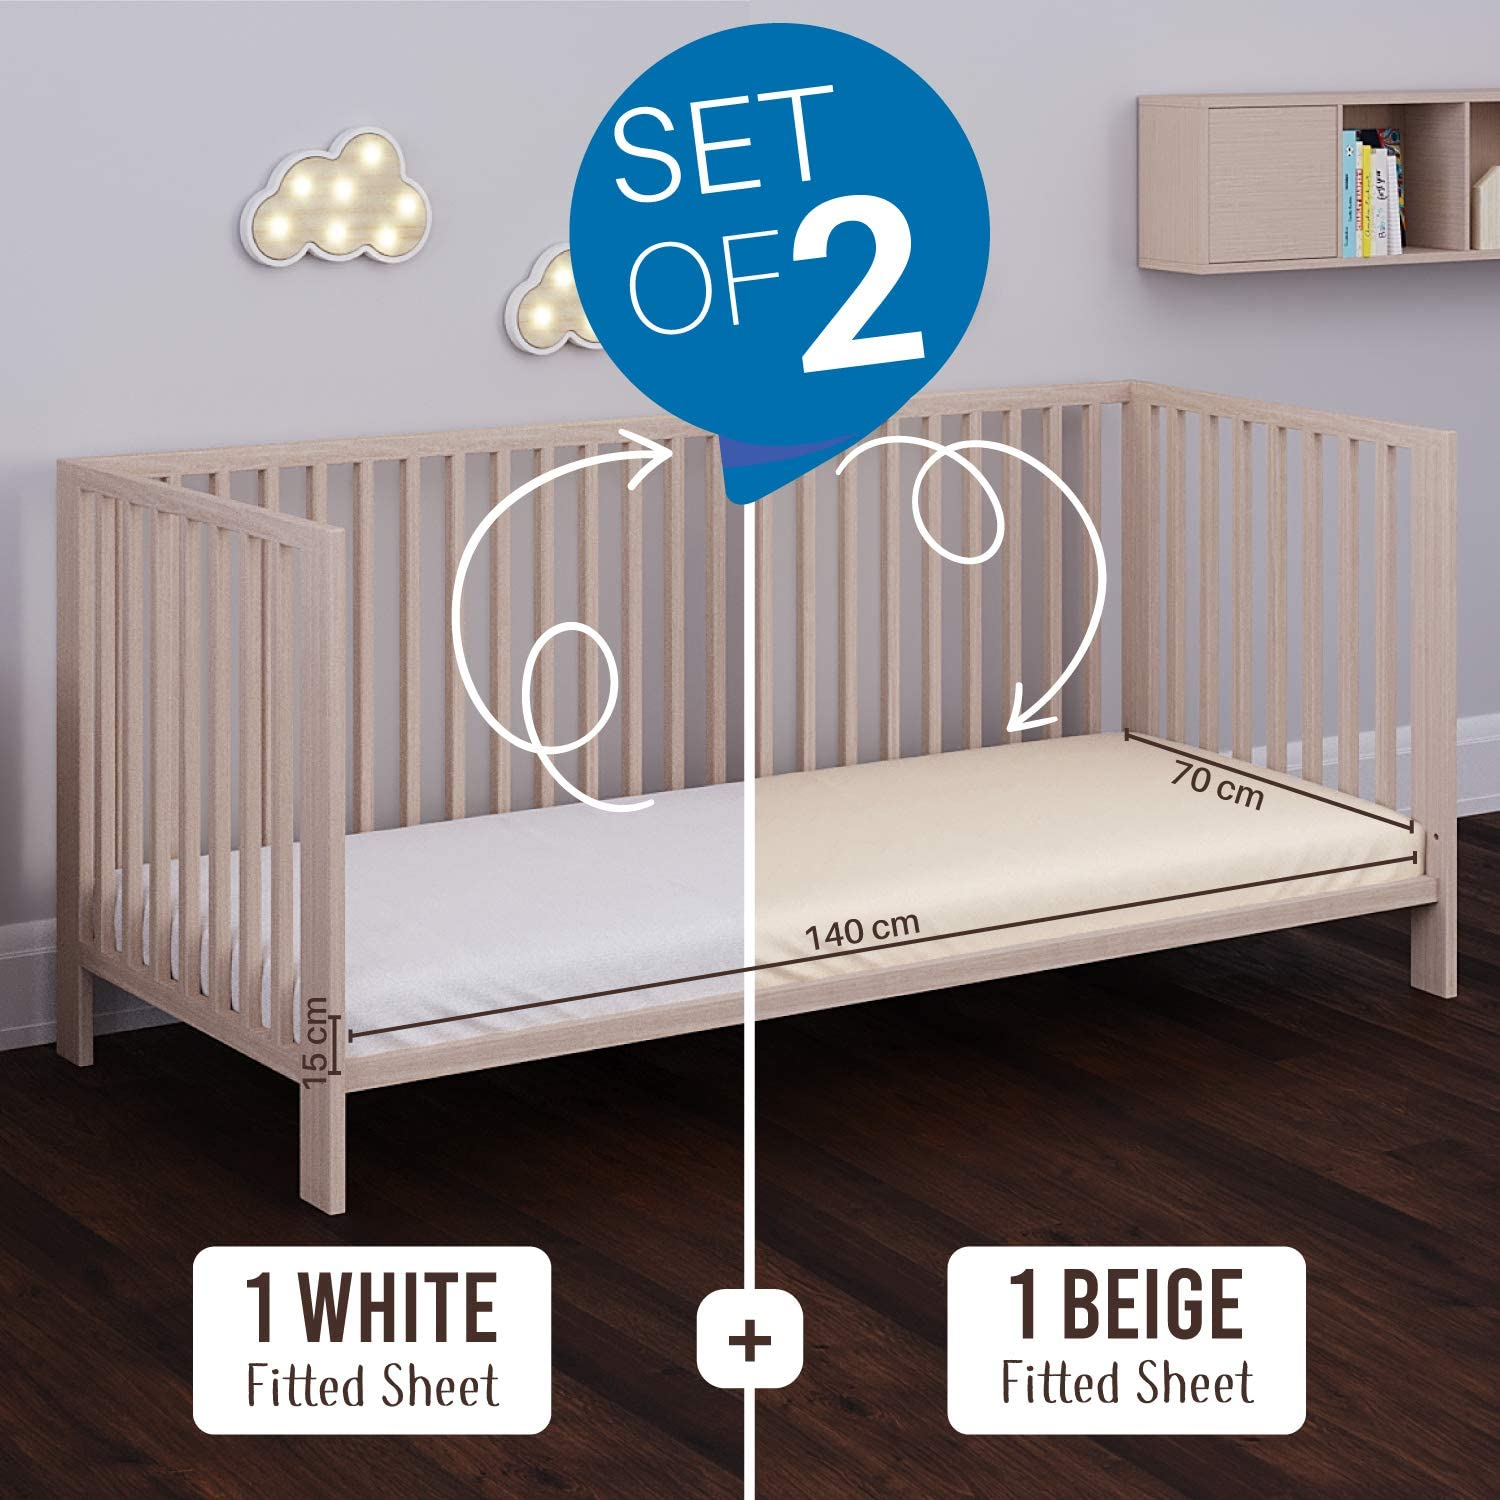 OEKO TEX Certified Free from Chemical Products Pocket 12 cm White and Beige for Baby Bed Fitted Sheets with Elastic For 70 x 140 cm Mattresses Set of 2 Jersey Cotton Fitted Sheets 70x140cm